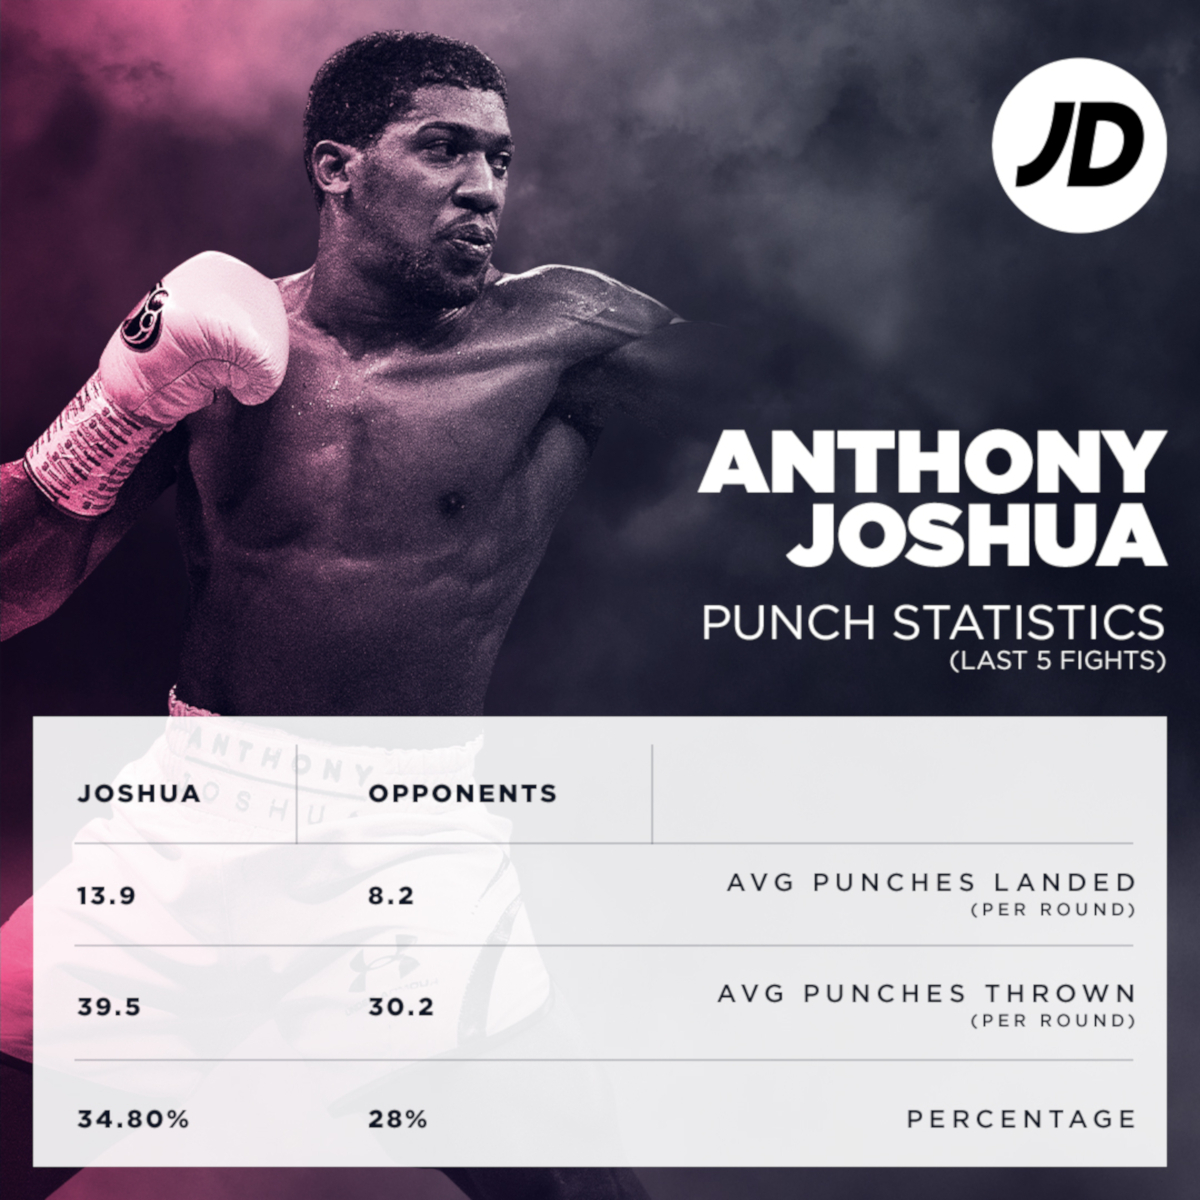 Anthony Joshua recent punch stats by JD Sports